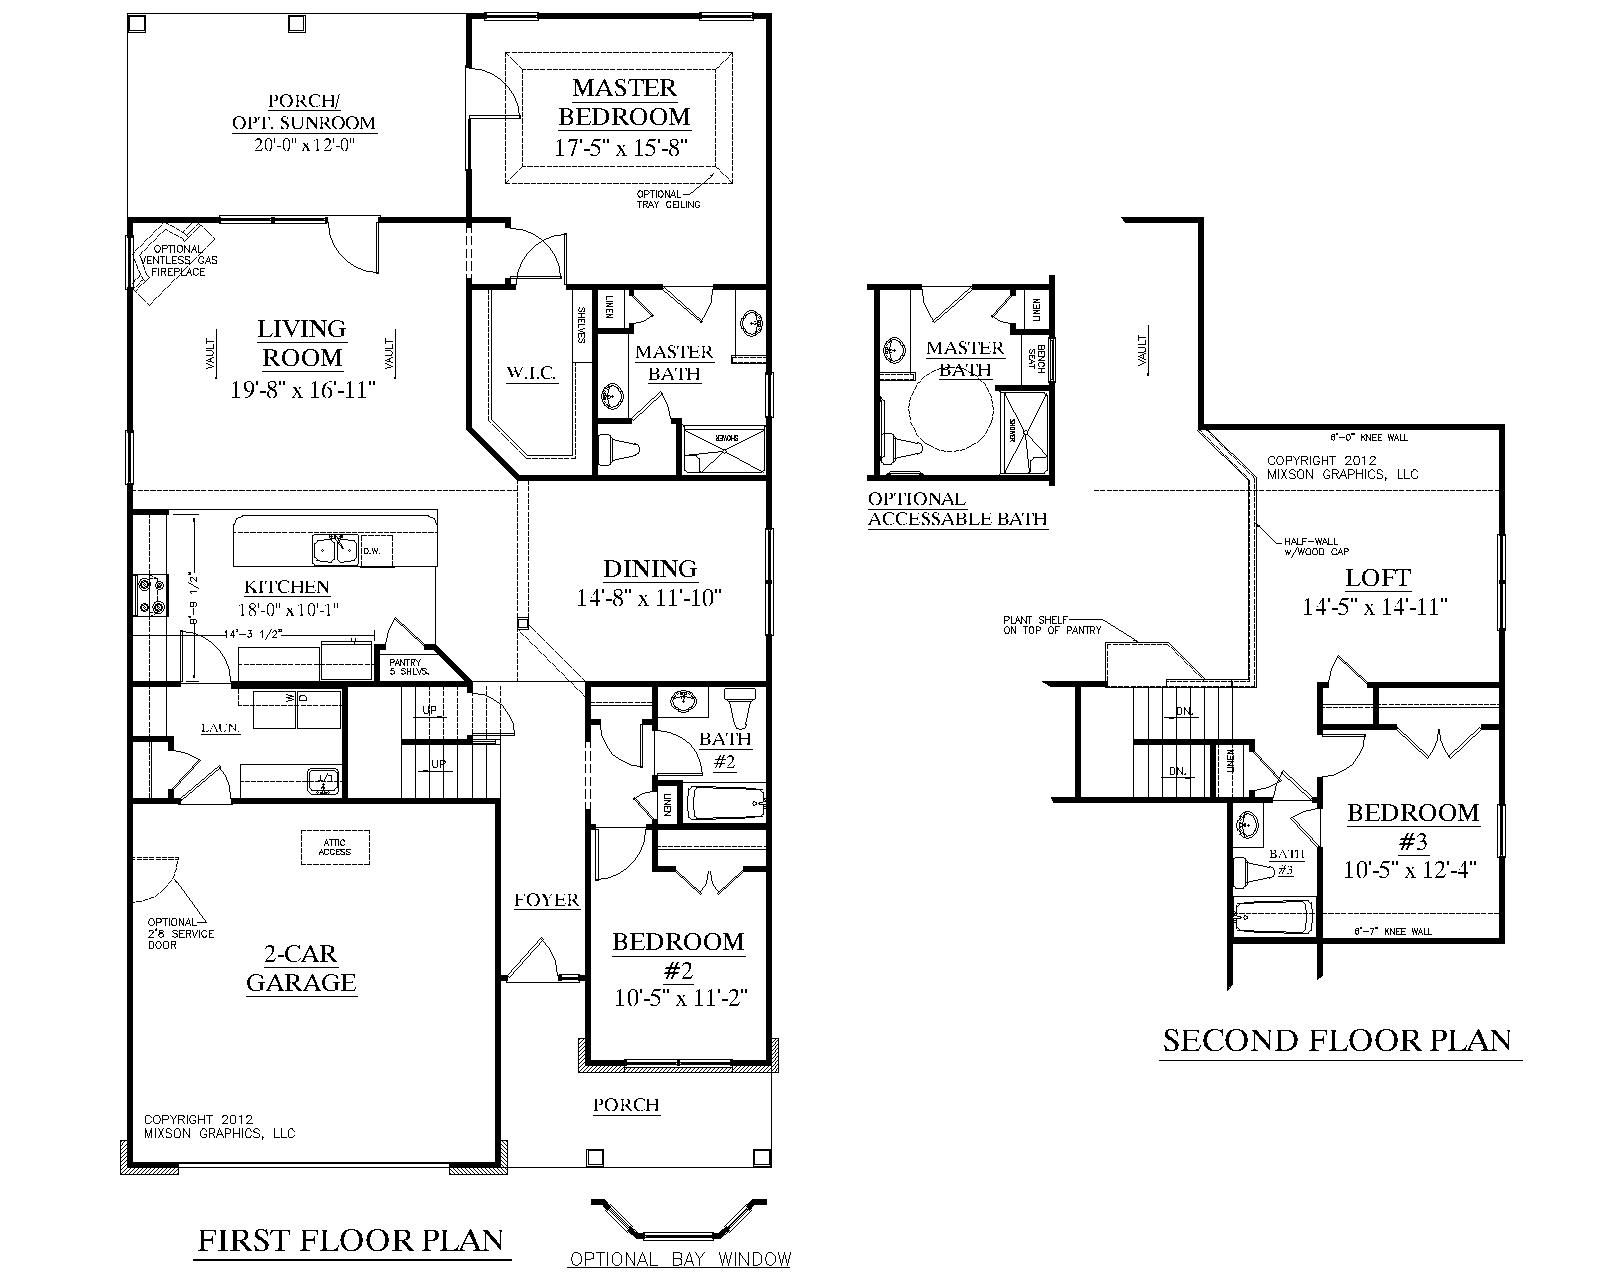 House plan 2224 kingstree floor plan traditional 1 1 2 for One bedroom loft floor plans